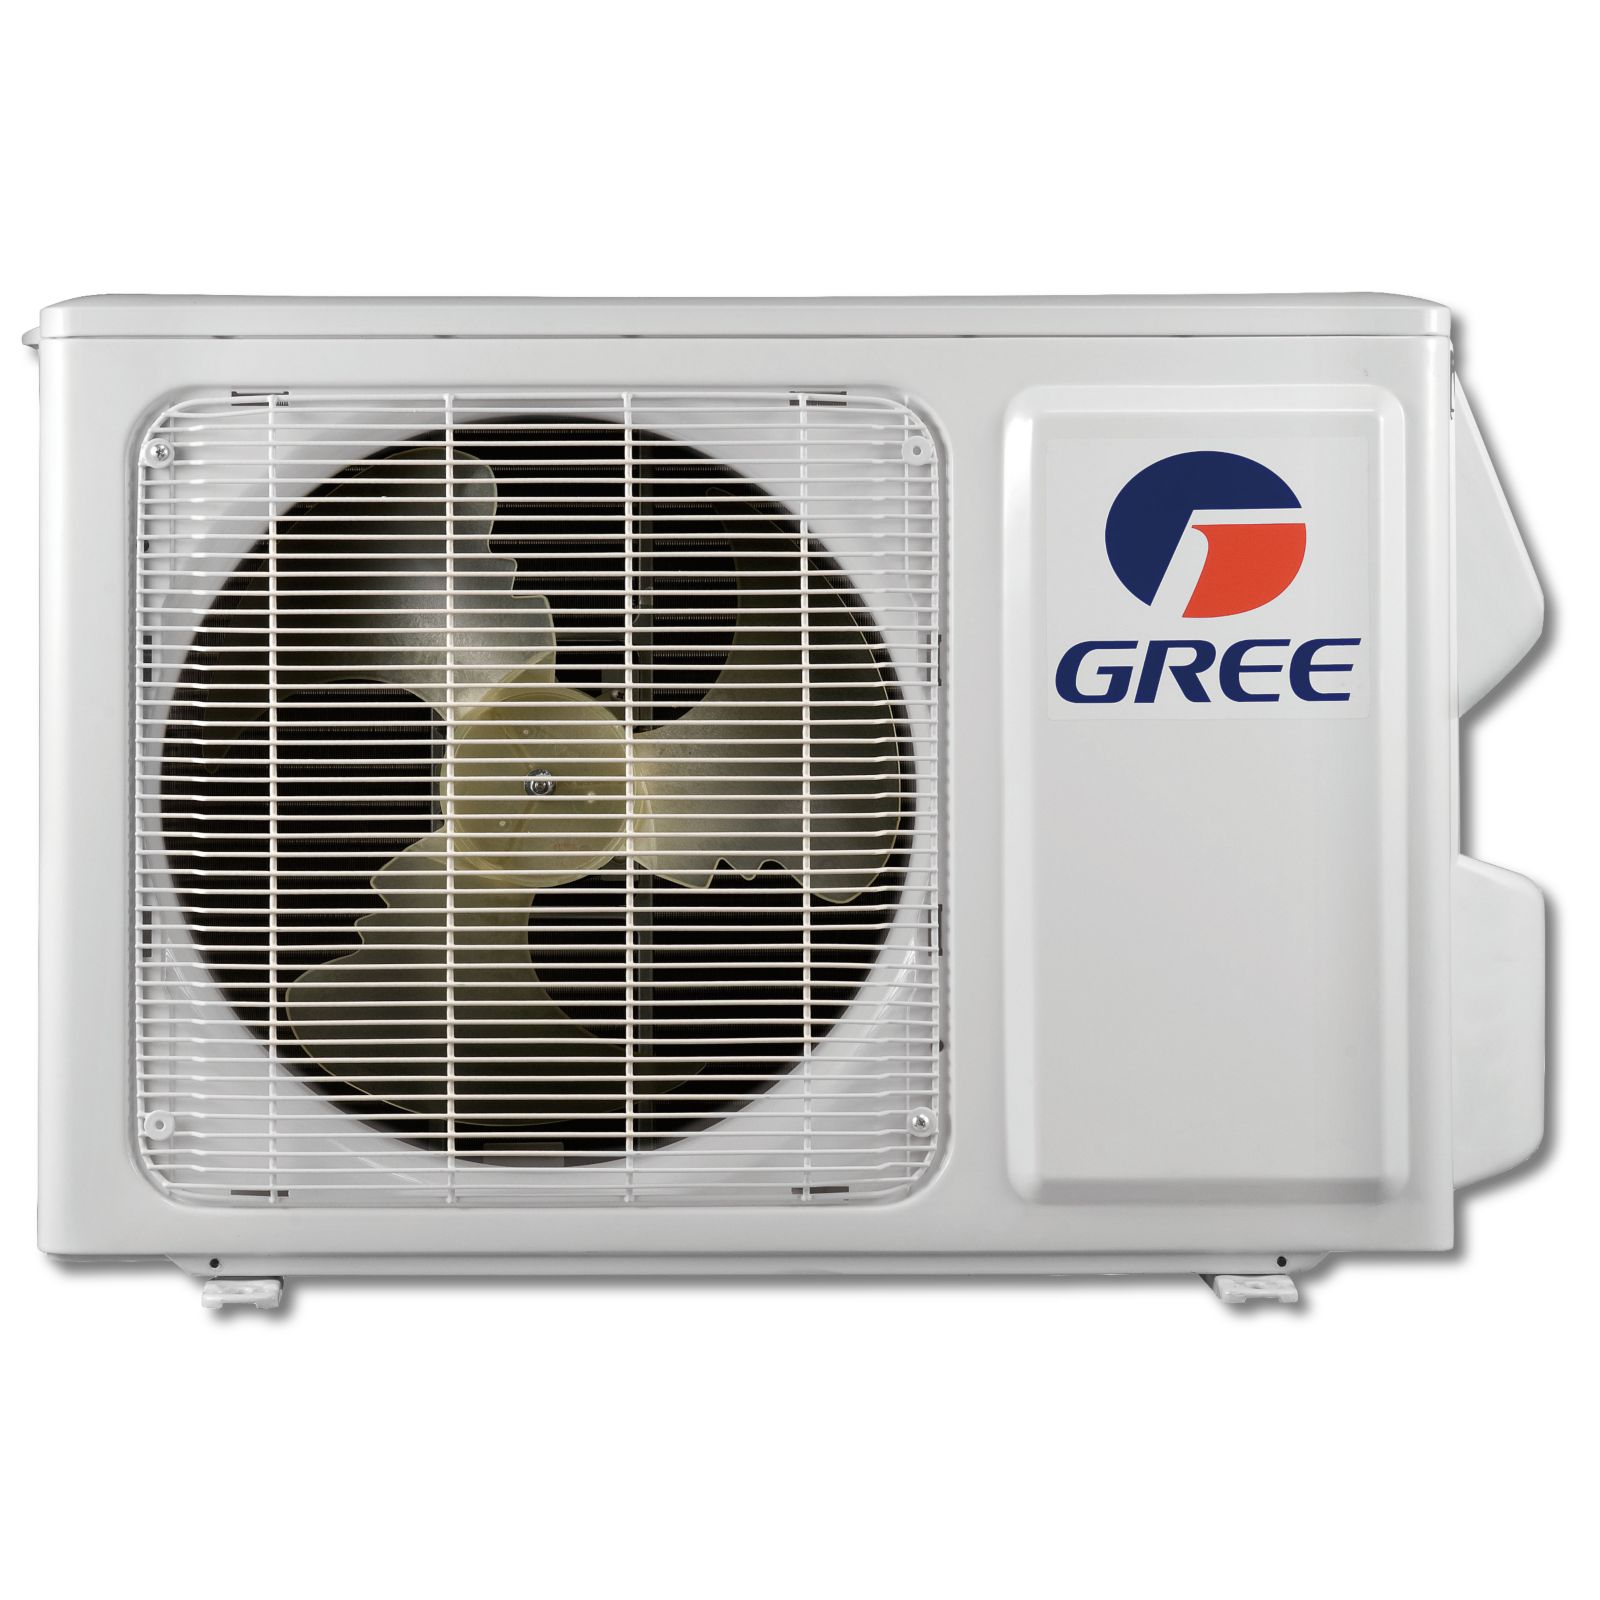 GREE RIO09HP115V1AO - RIO Ductless Outdoor Unit 115V/60 Hz High Efficiency DC Inverter Technology 16 SEER, 12.0 EER, 8.6 HSPF